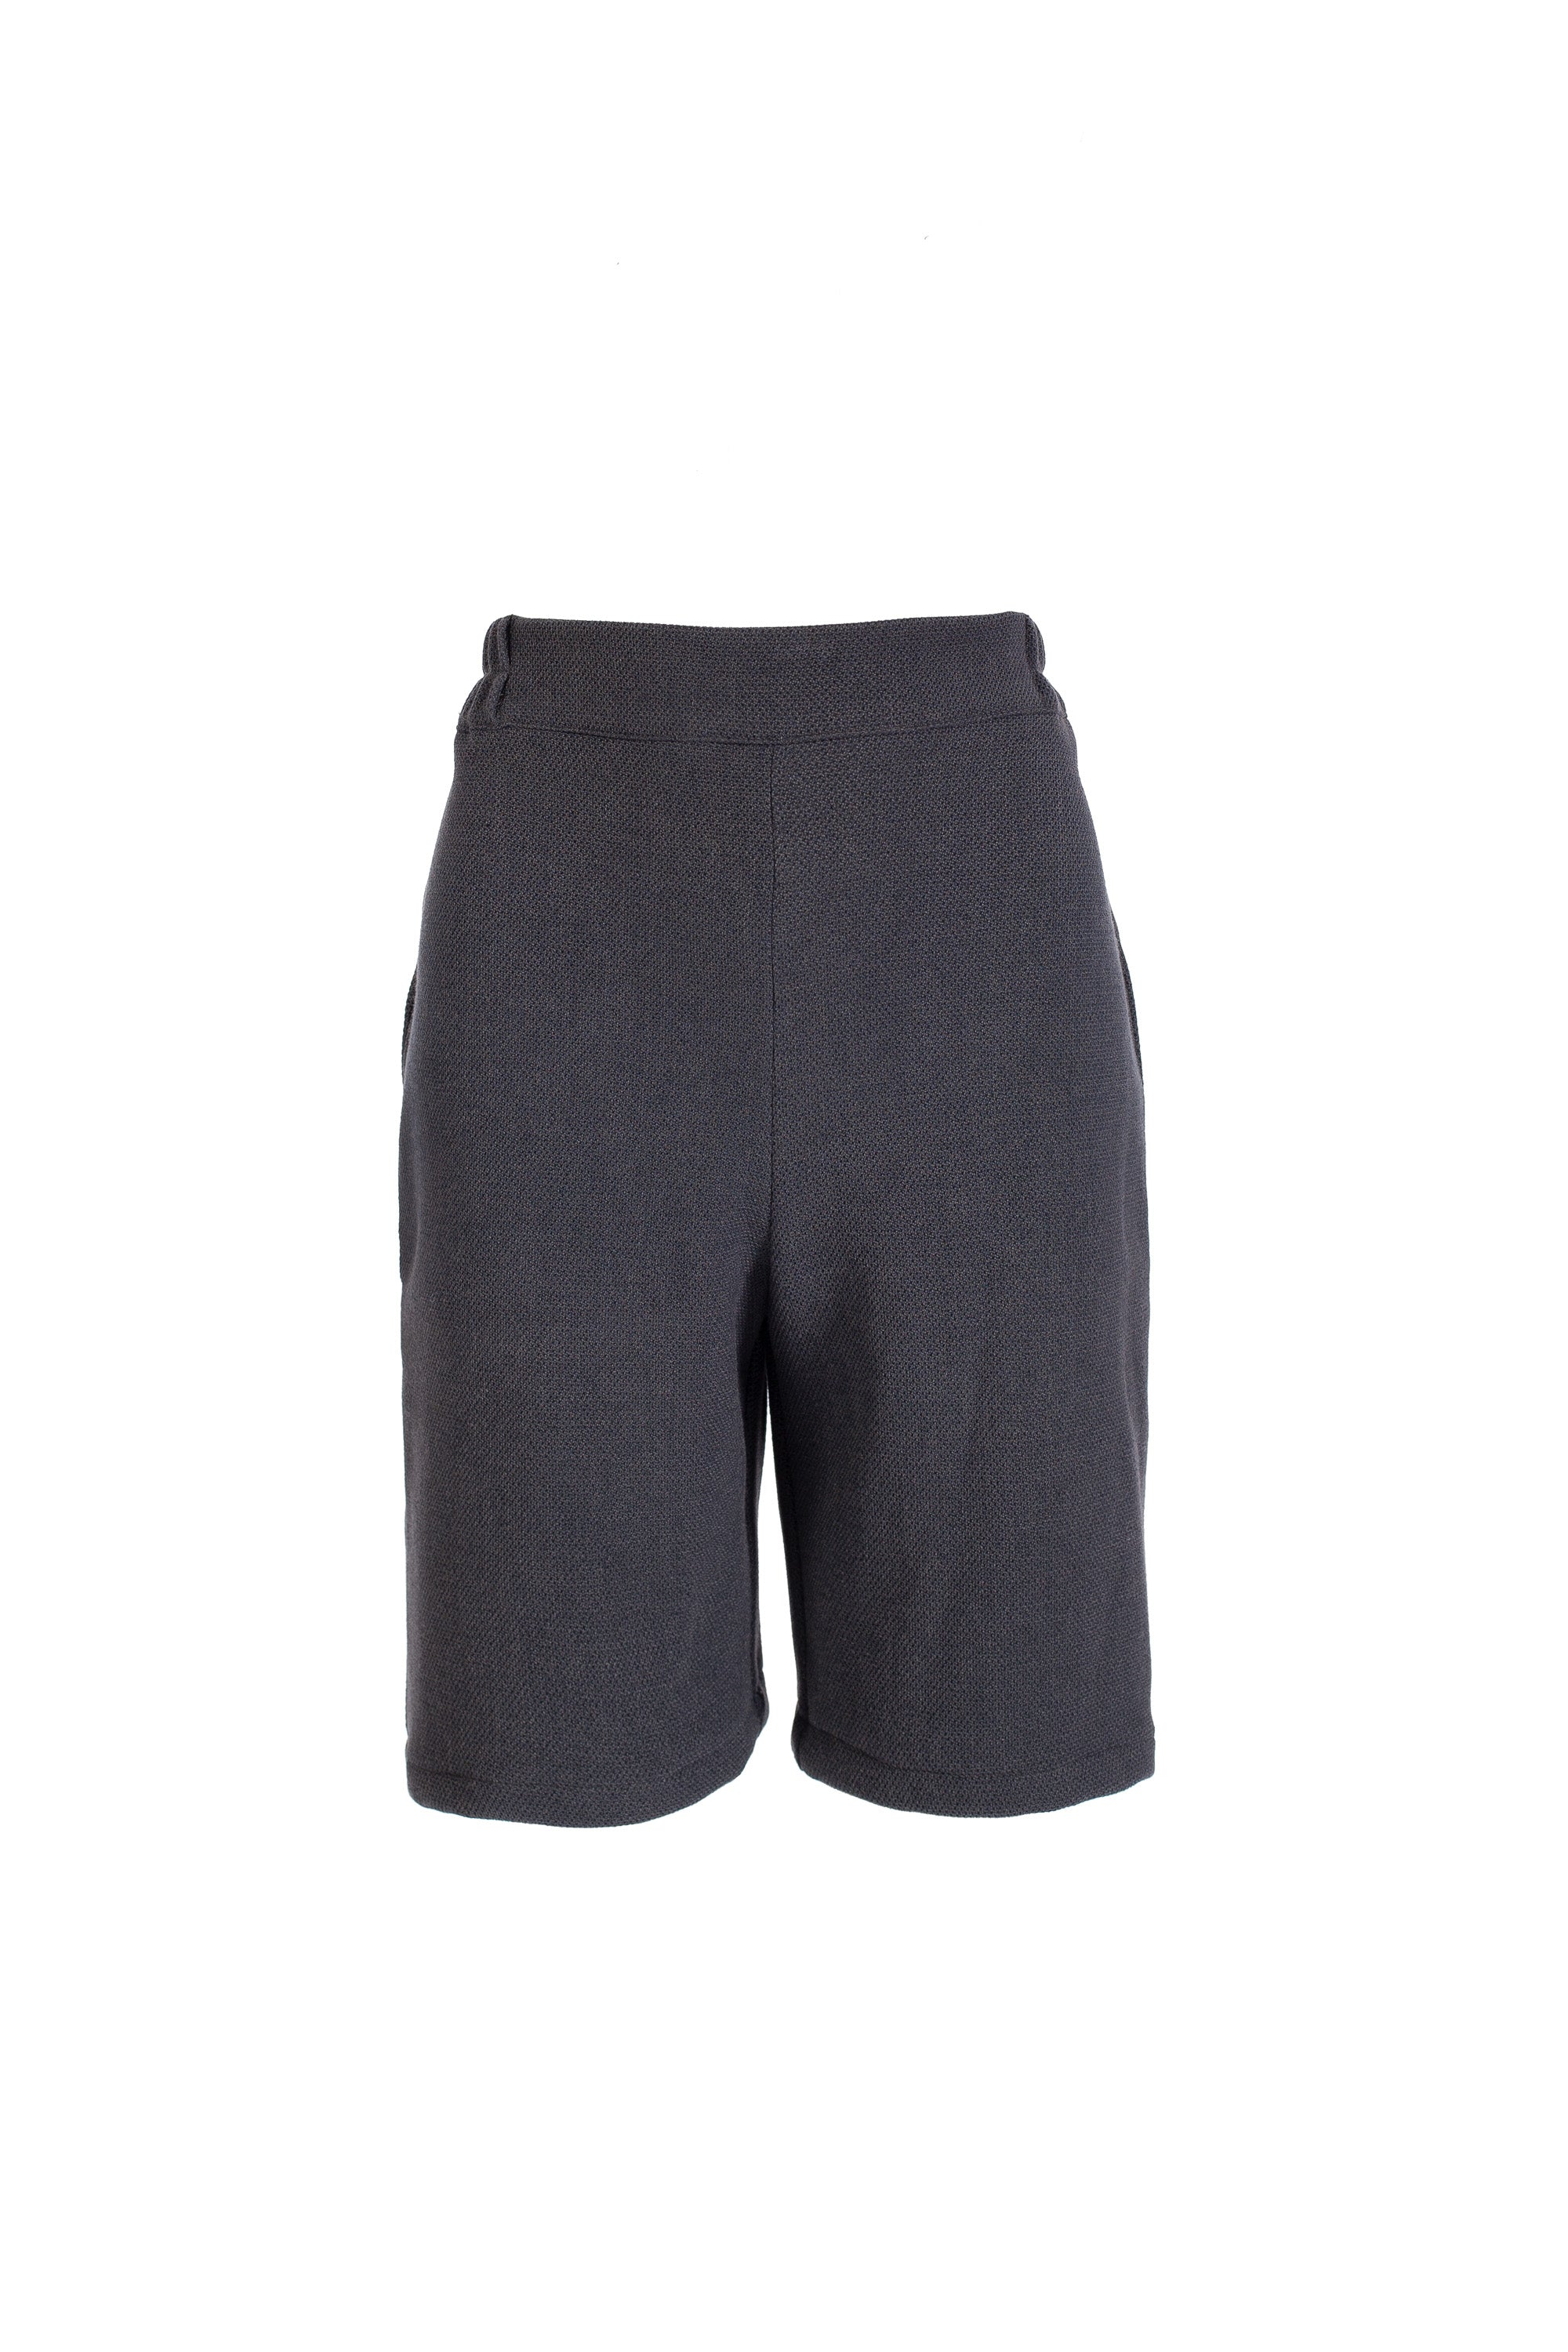 Science | gray blue shorts